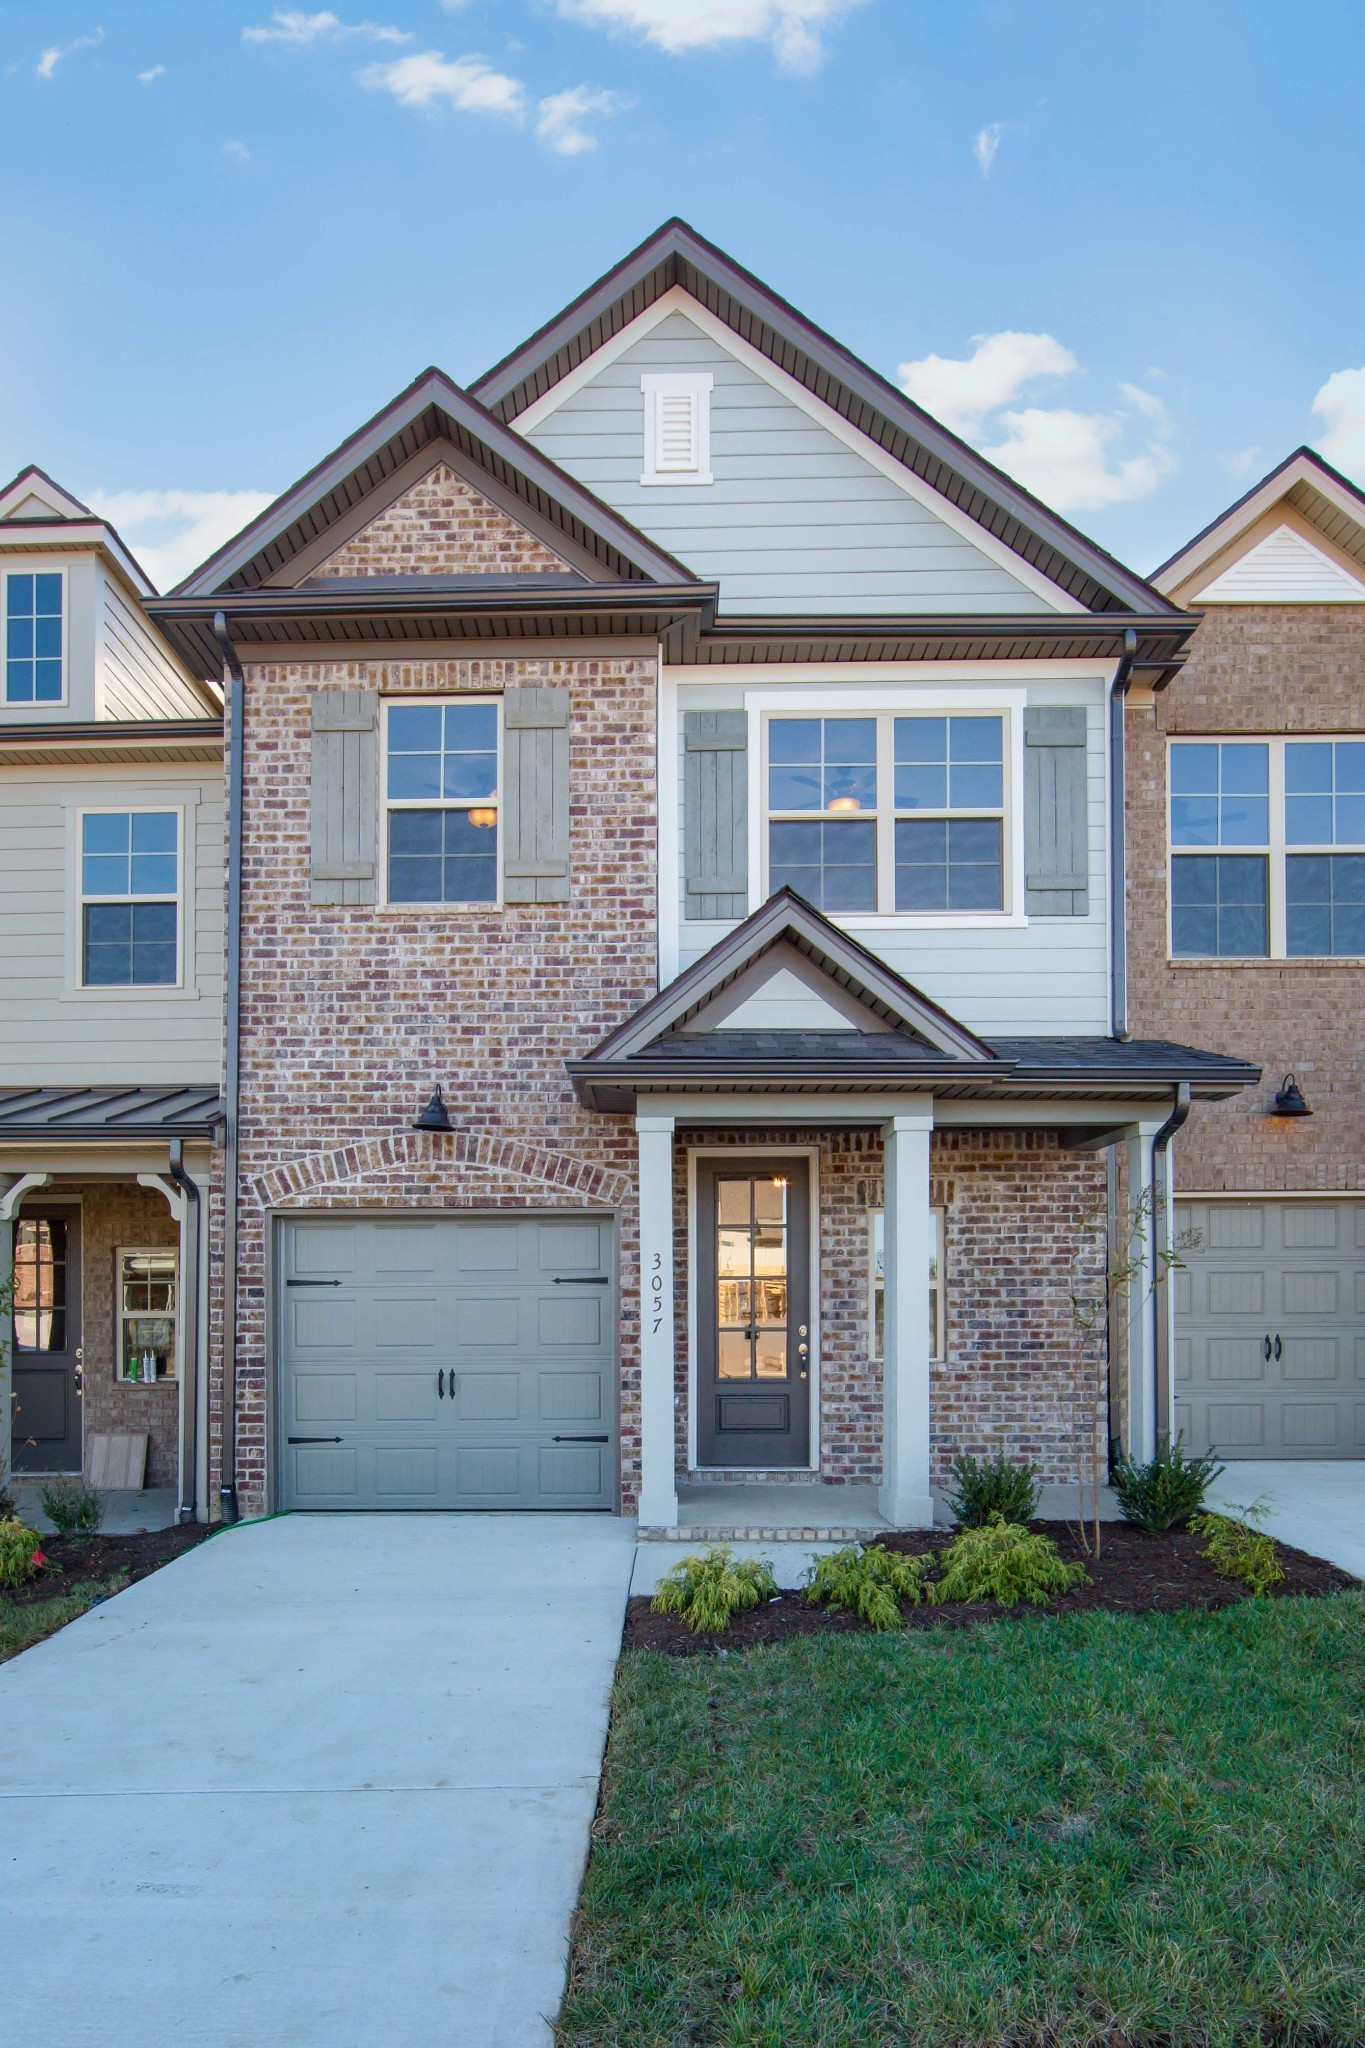 The Beckett Plan by Willow Branch Homes features an open living/dining/kitchen plan with a covered back porch and 3 bedrooms/2 baths up. Home includes hardwoods in the living areas, full hardwoods stairs, granite in kitchen and baths, tiled backsplash, master en-suite with vaulted ceiling, master bathroom with tiled shower, and full sodded yard. Home is expected to be completed February 2021.